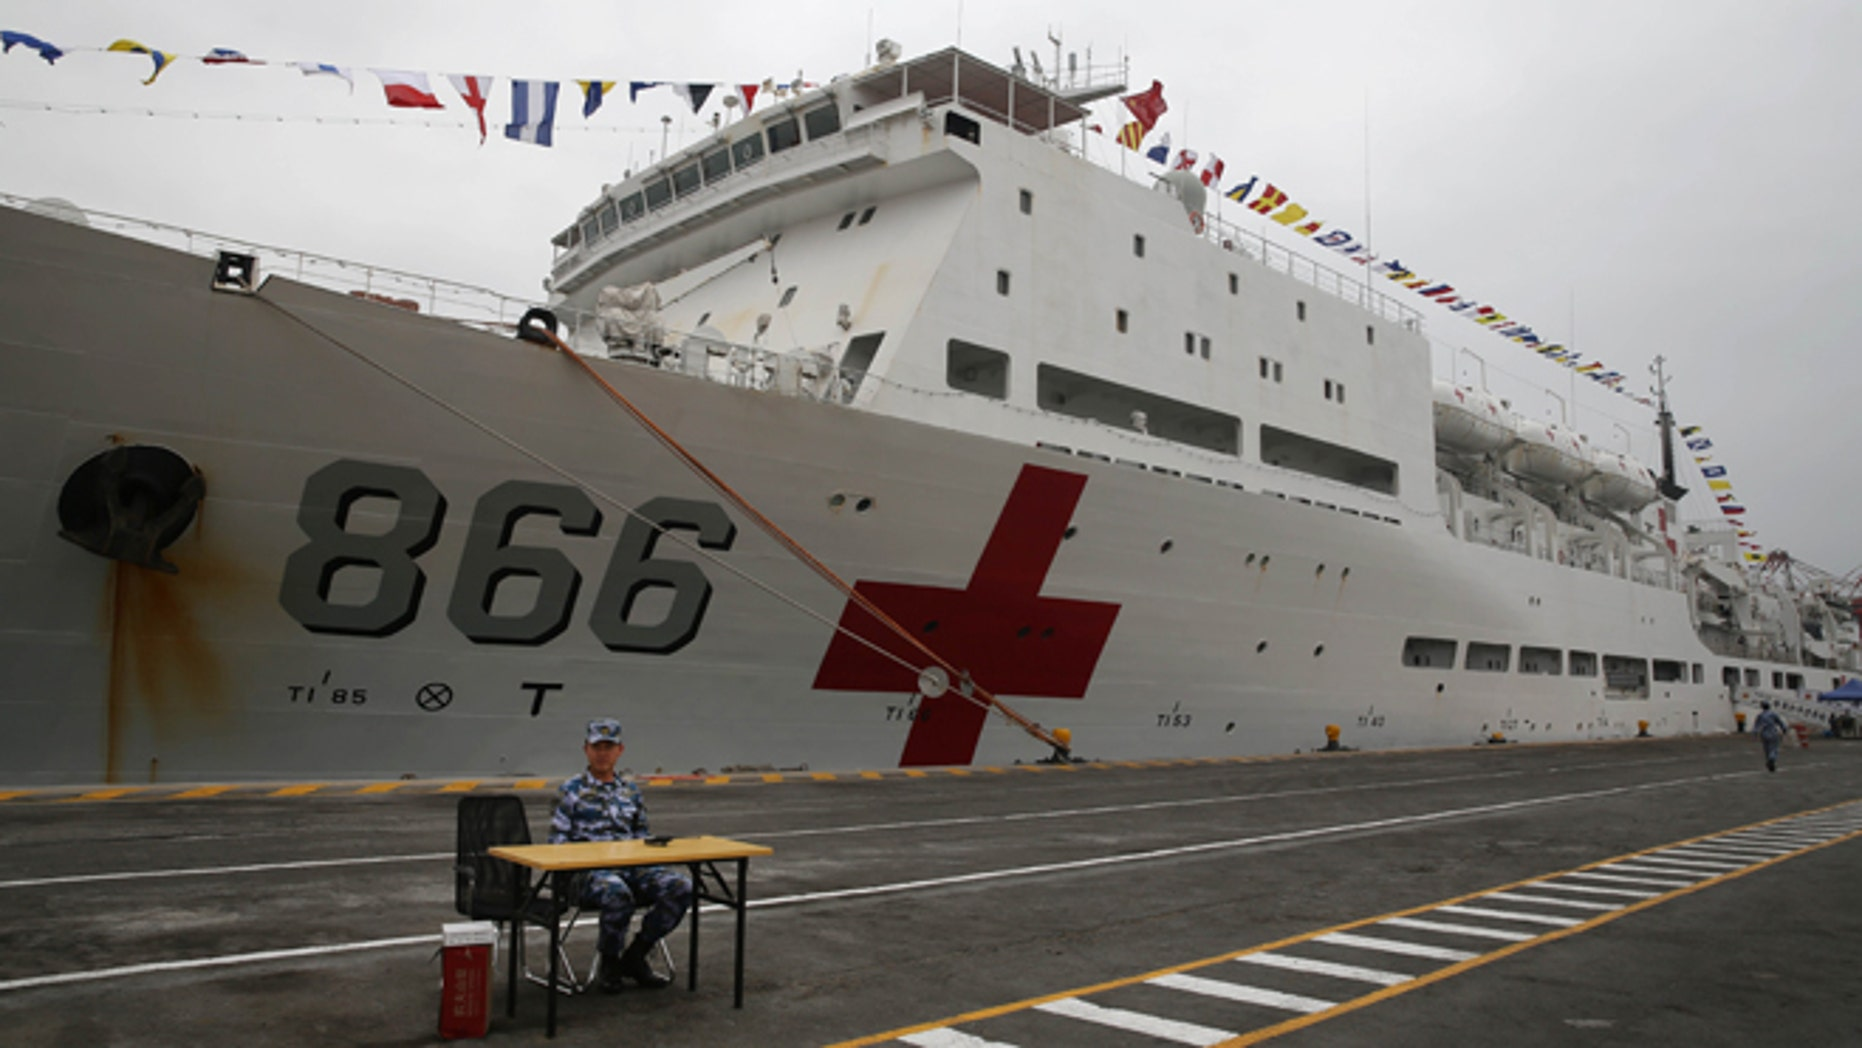 A Chinese official sits in front of Chinese naval hospital ship in the port of Callao, Peru, Tuesday, Dec. 22, 2015. The Peace Ark, a Chinese naval hospital ship is making a first-ever call into a South American port in a sign of the Asian economic giants growing influence in Washingtons backyard. Its the last destination on a three-month Harmonious Mission that also included stops in Australia, Mexico and the U.S. (AP Photo/Martin Mejia)